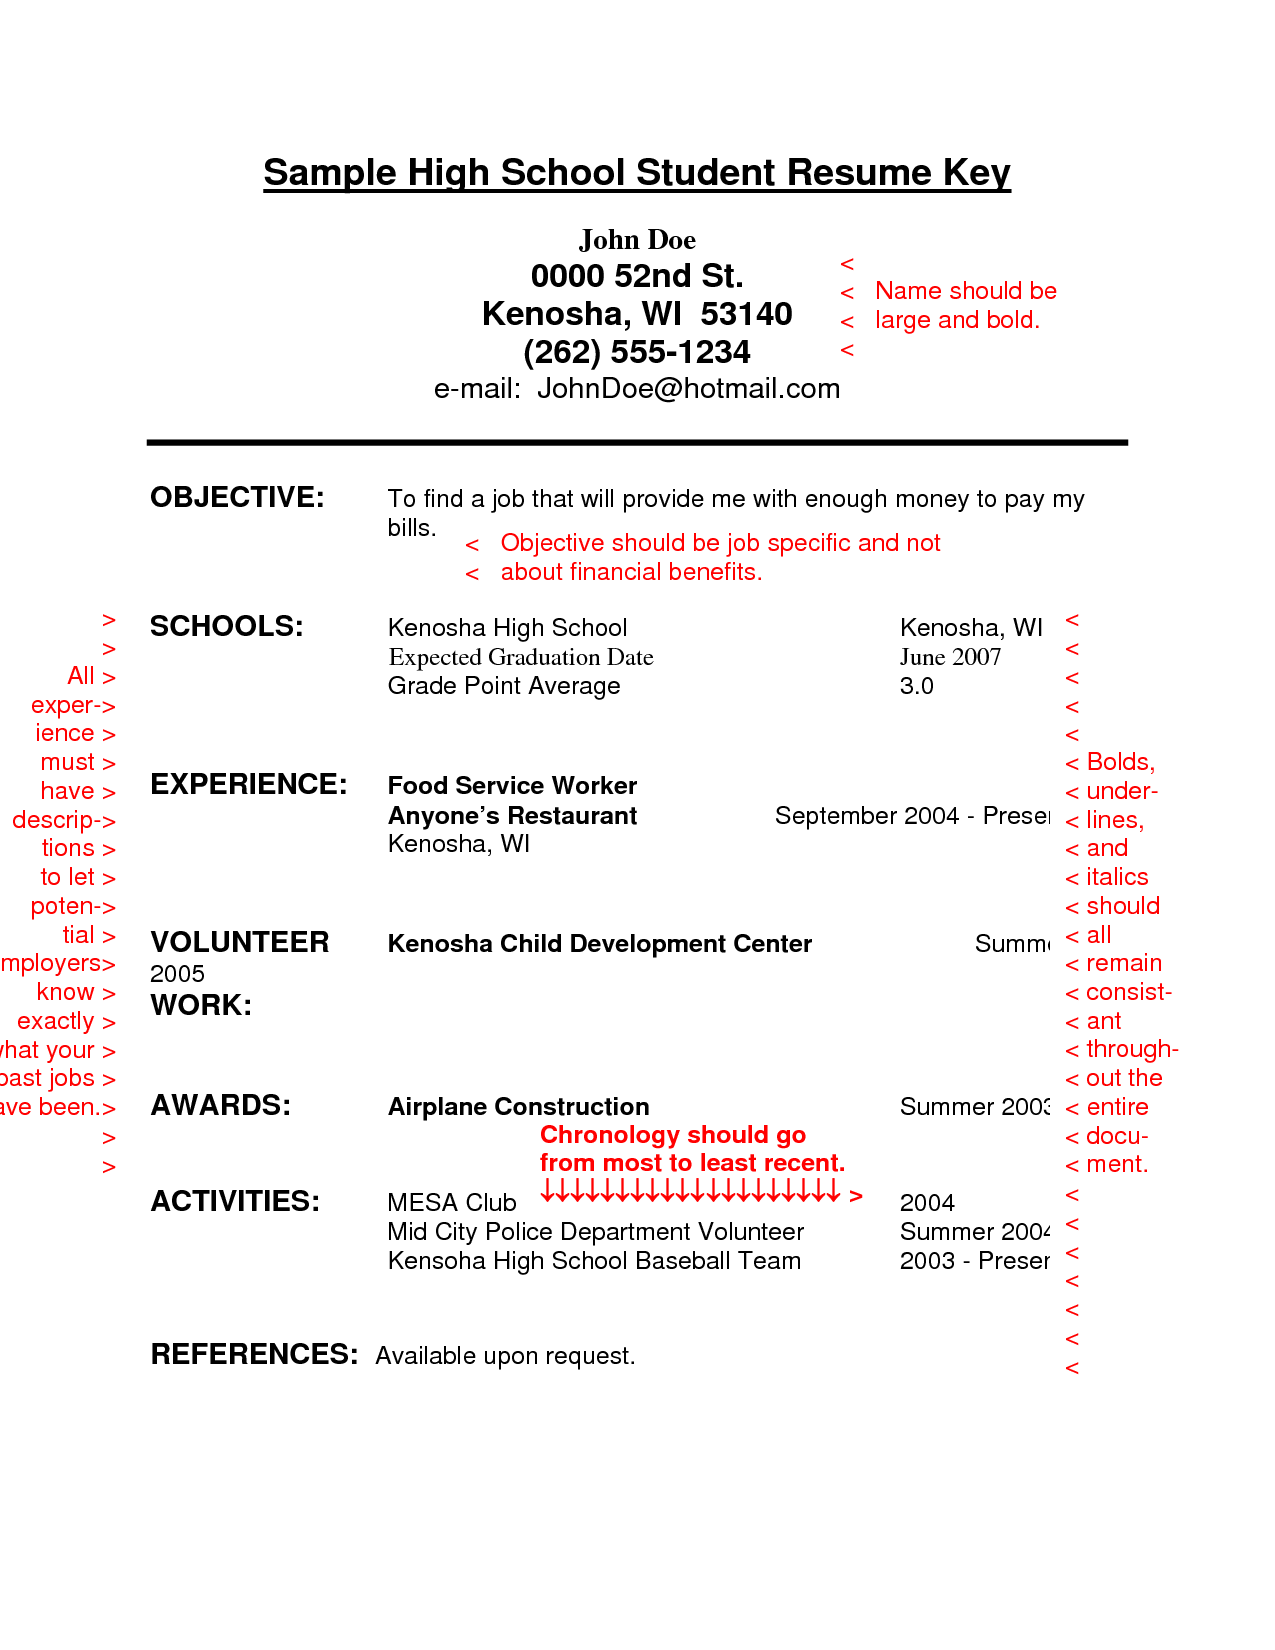 Resume Examples For High School Students 1